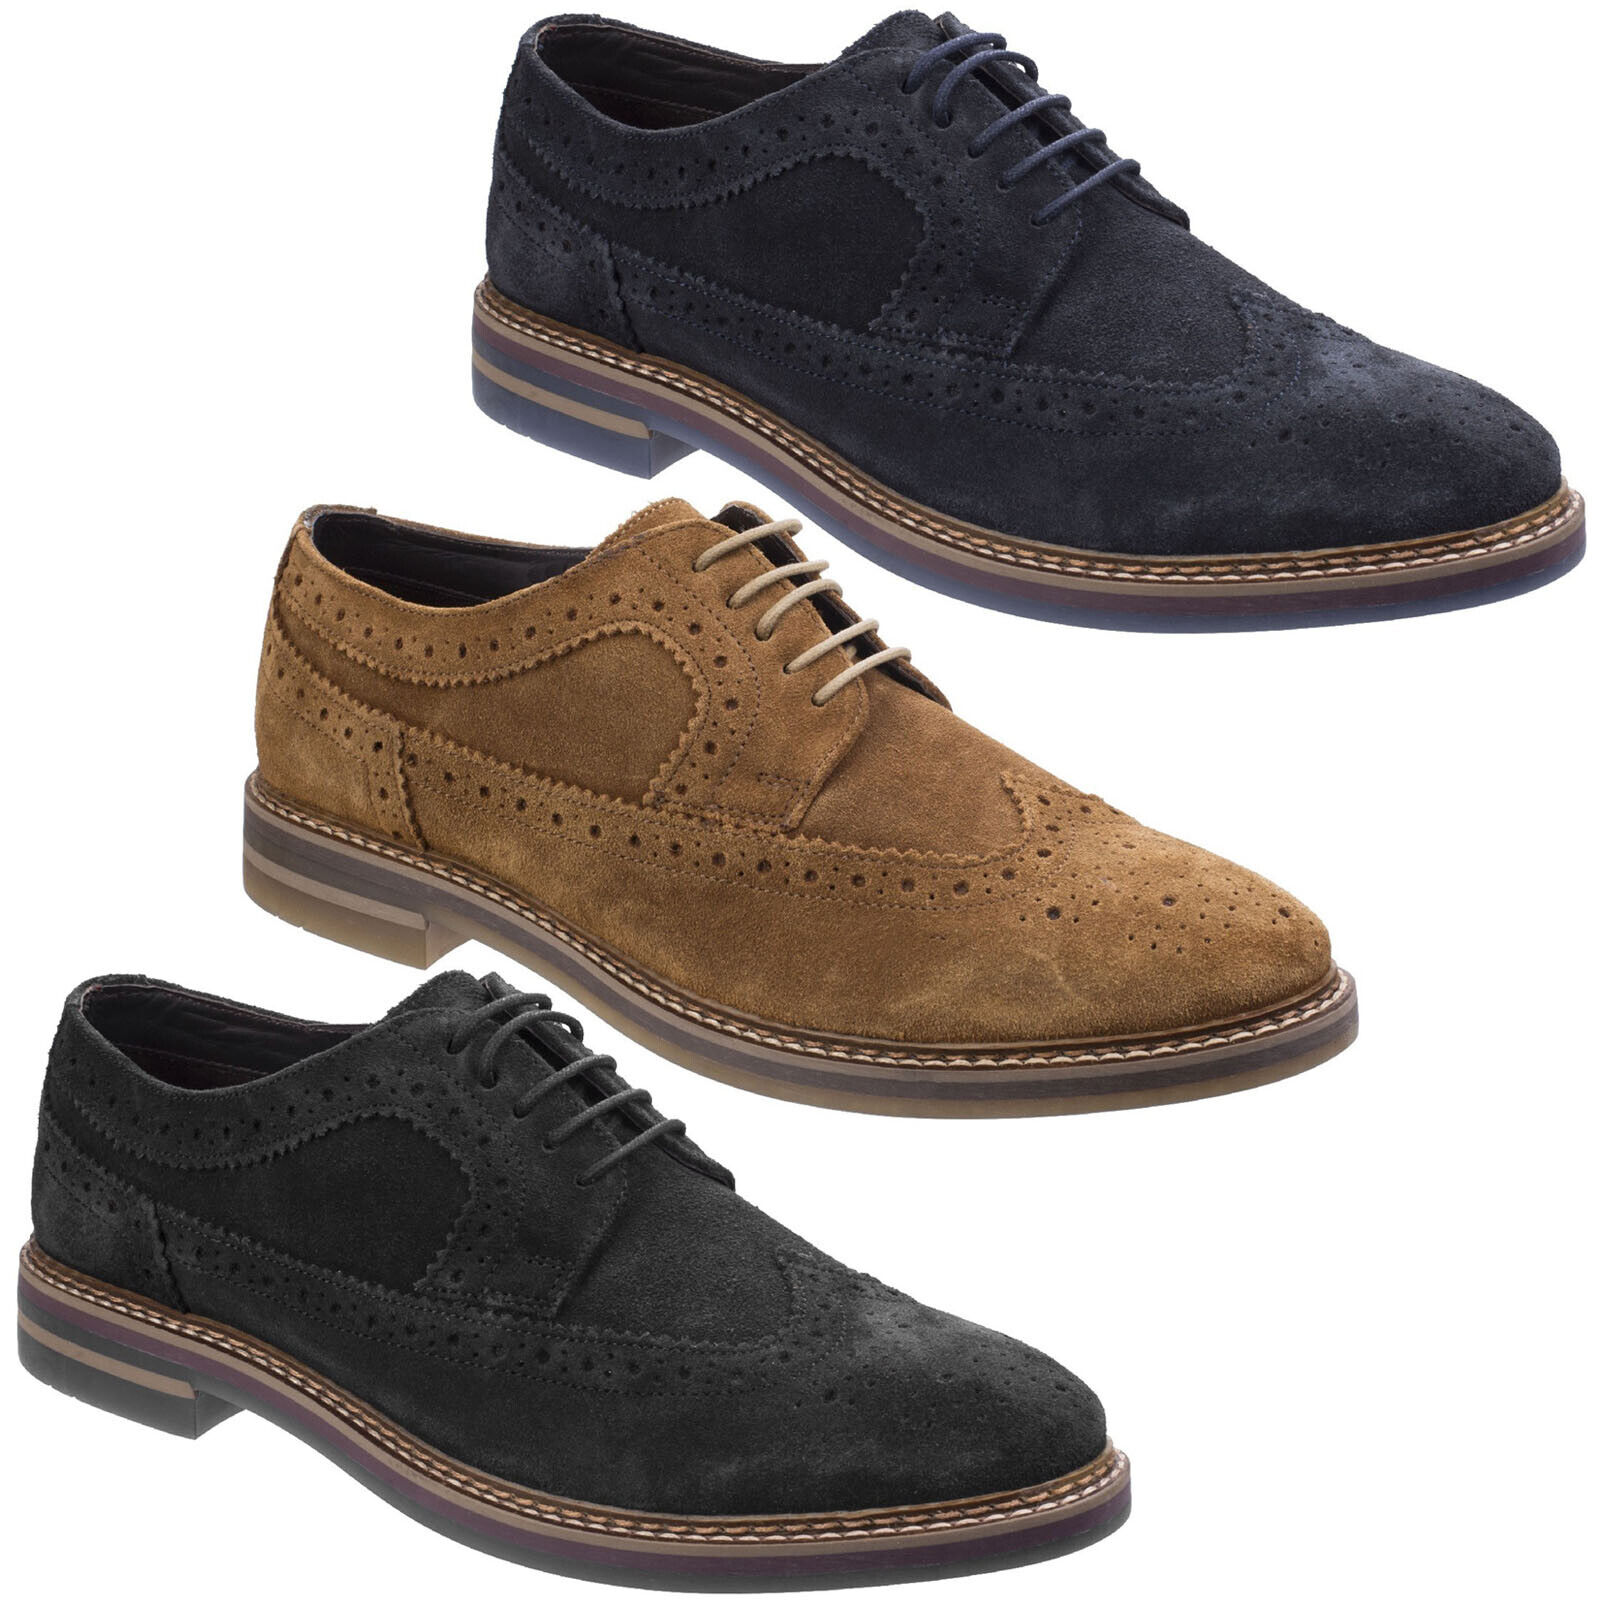 Base London Turner Brogue Formelle Schuhe Derby Wildleder Schnürer Smart Herren